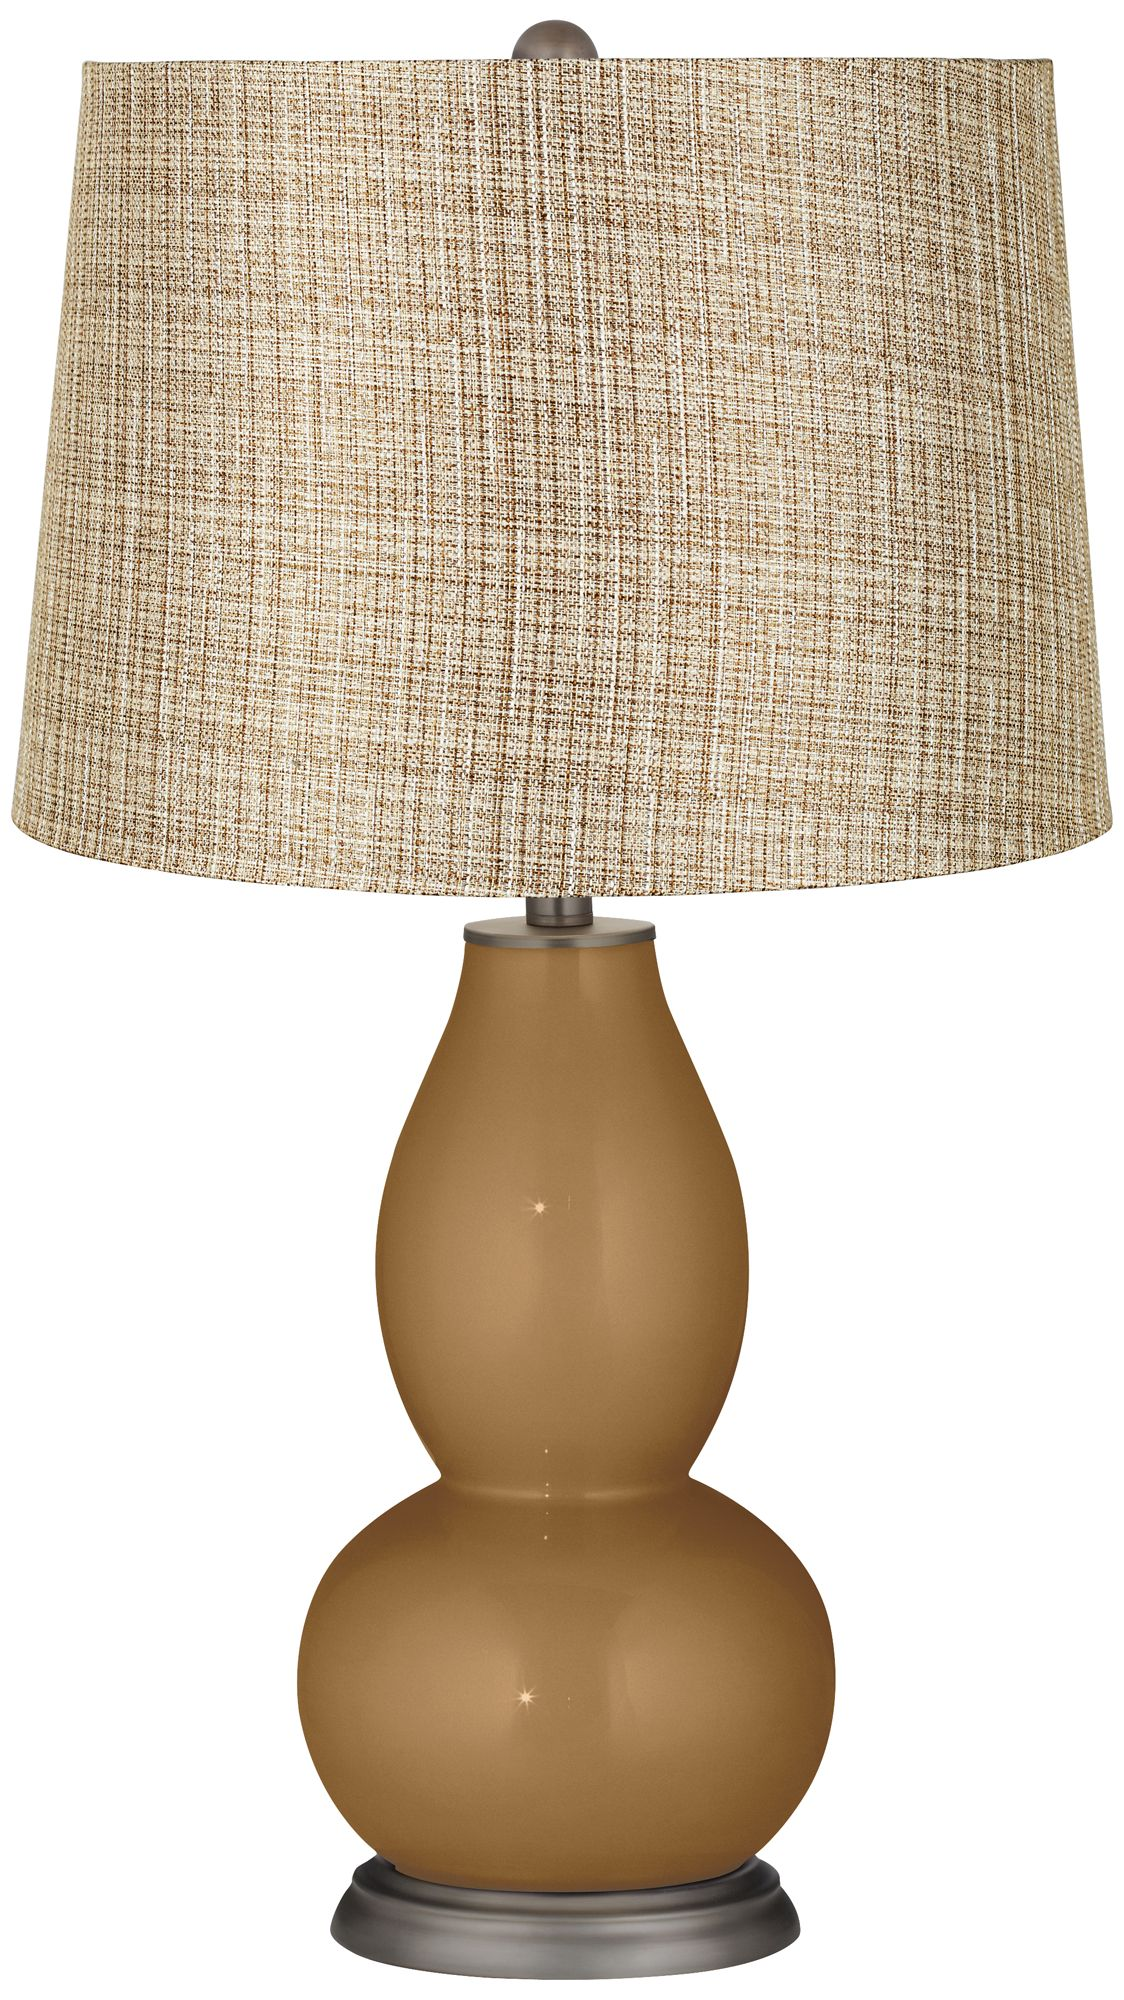 Replica Can Can Pendant Lamp by Flos Cheap Light Bronze Metallic Textured Linen Gold Double Gourd Lamp